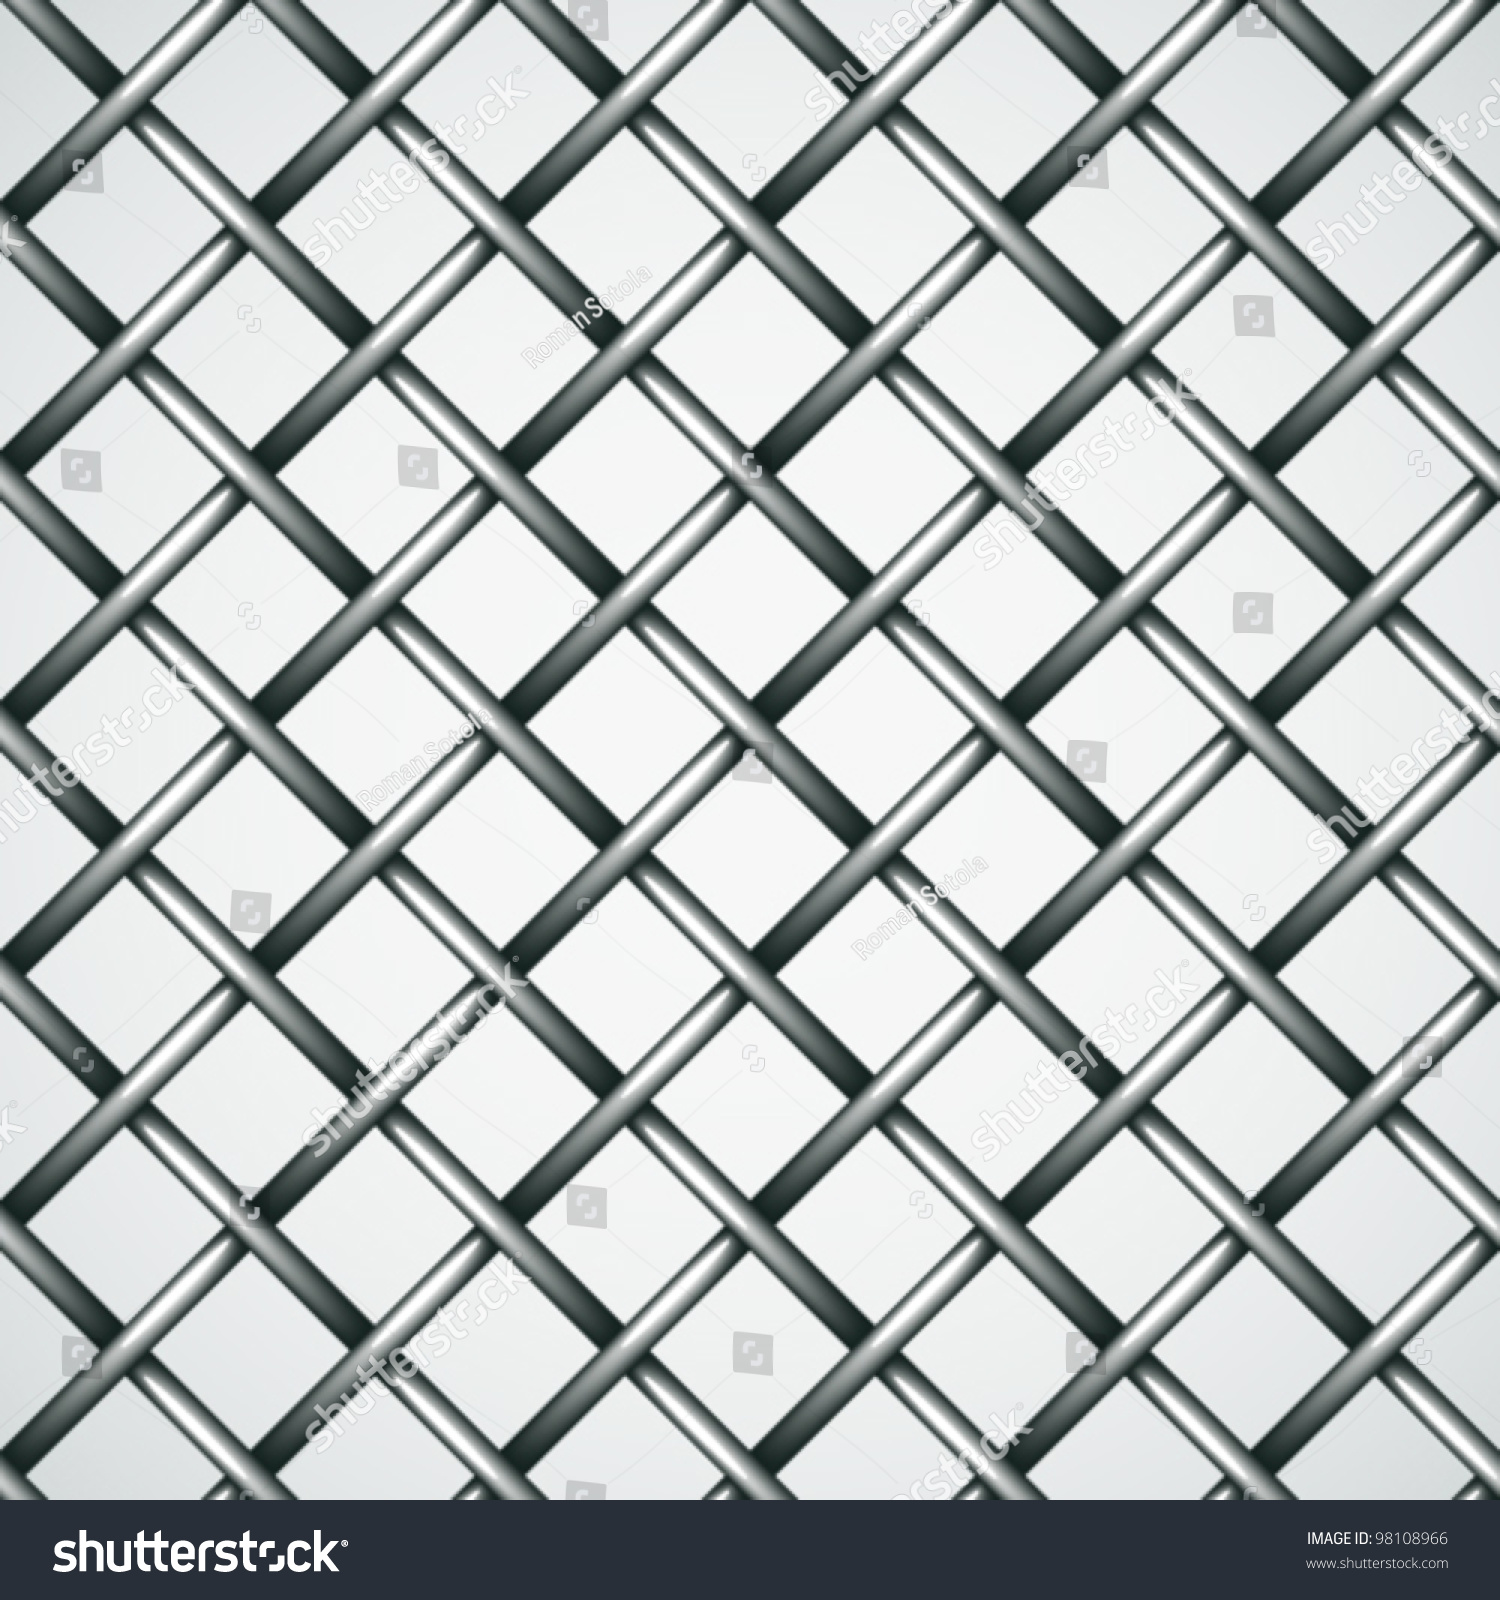 Fine Wire Fence Texture Photos - Wiring Diagram Ideas - guapodugh.com